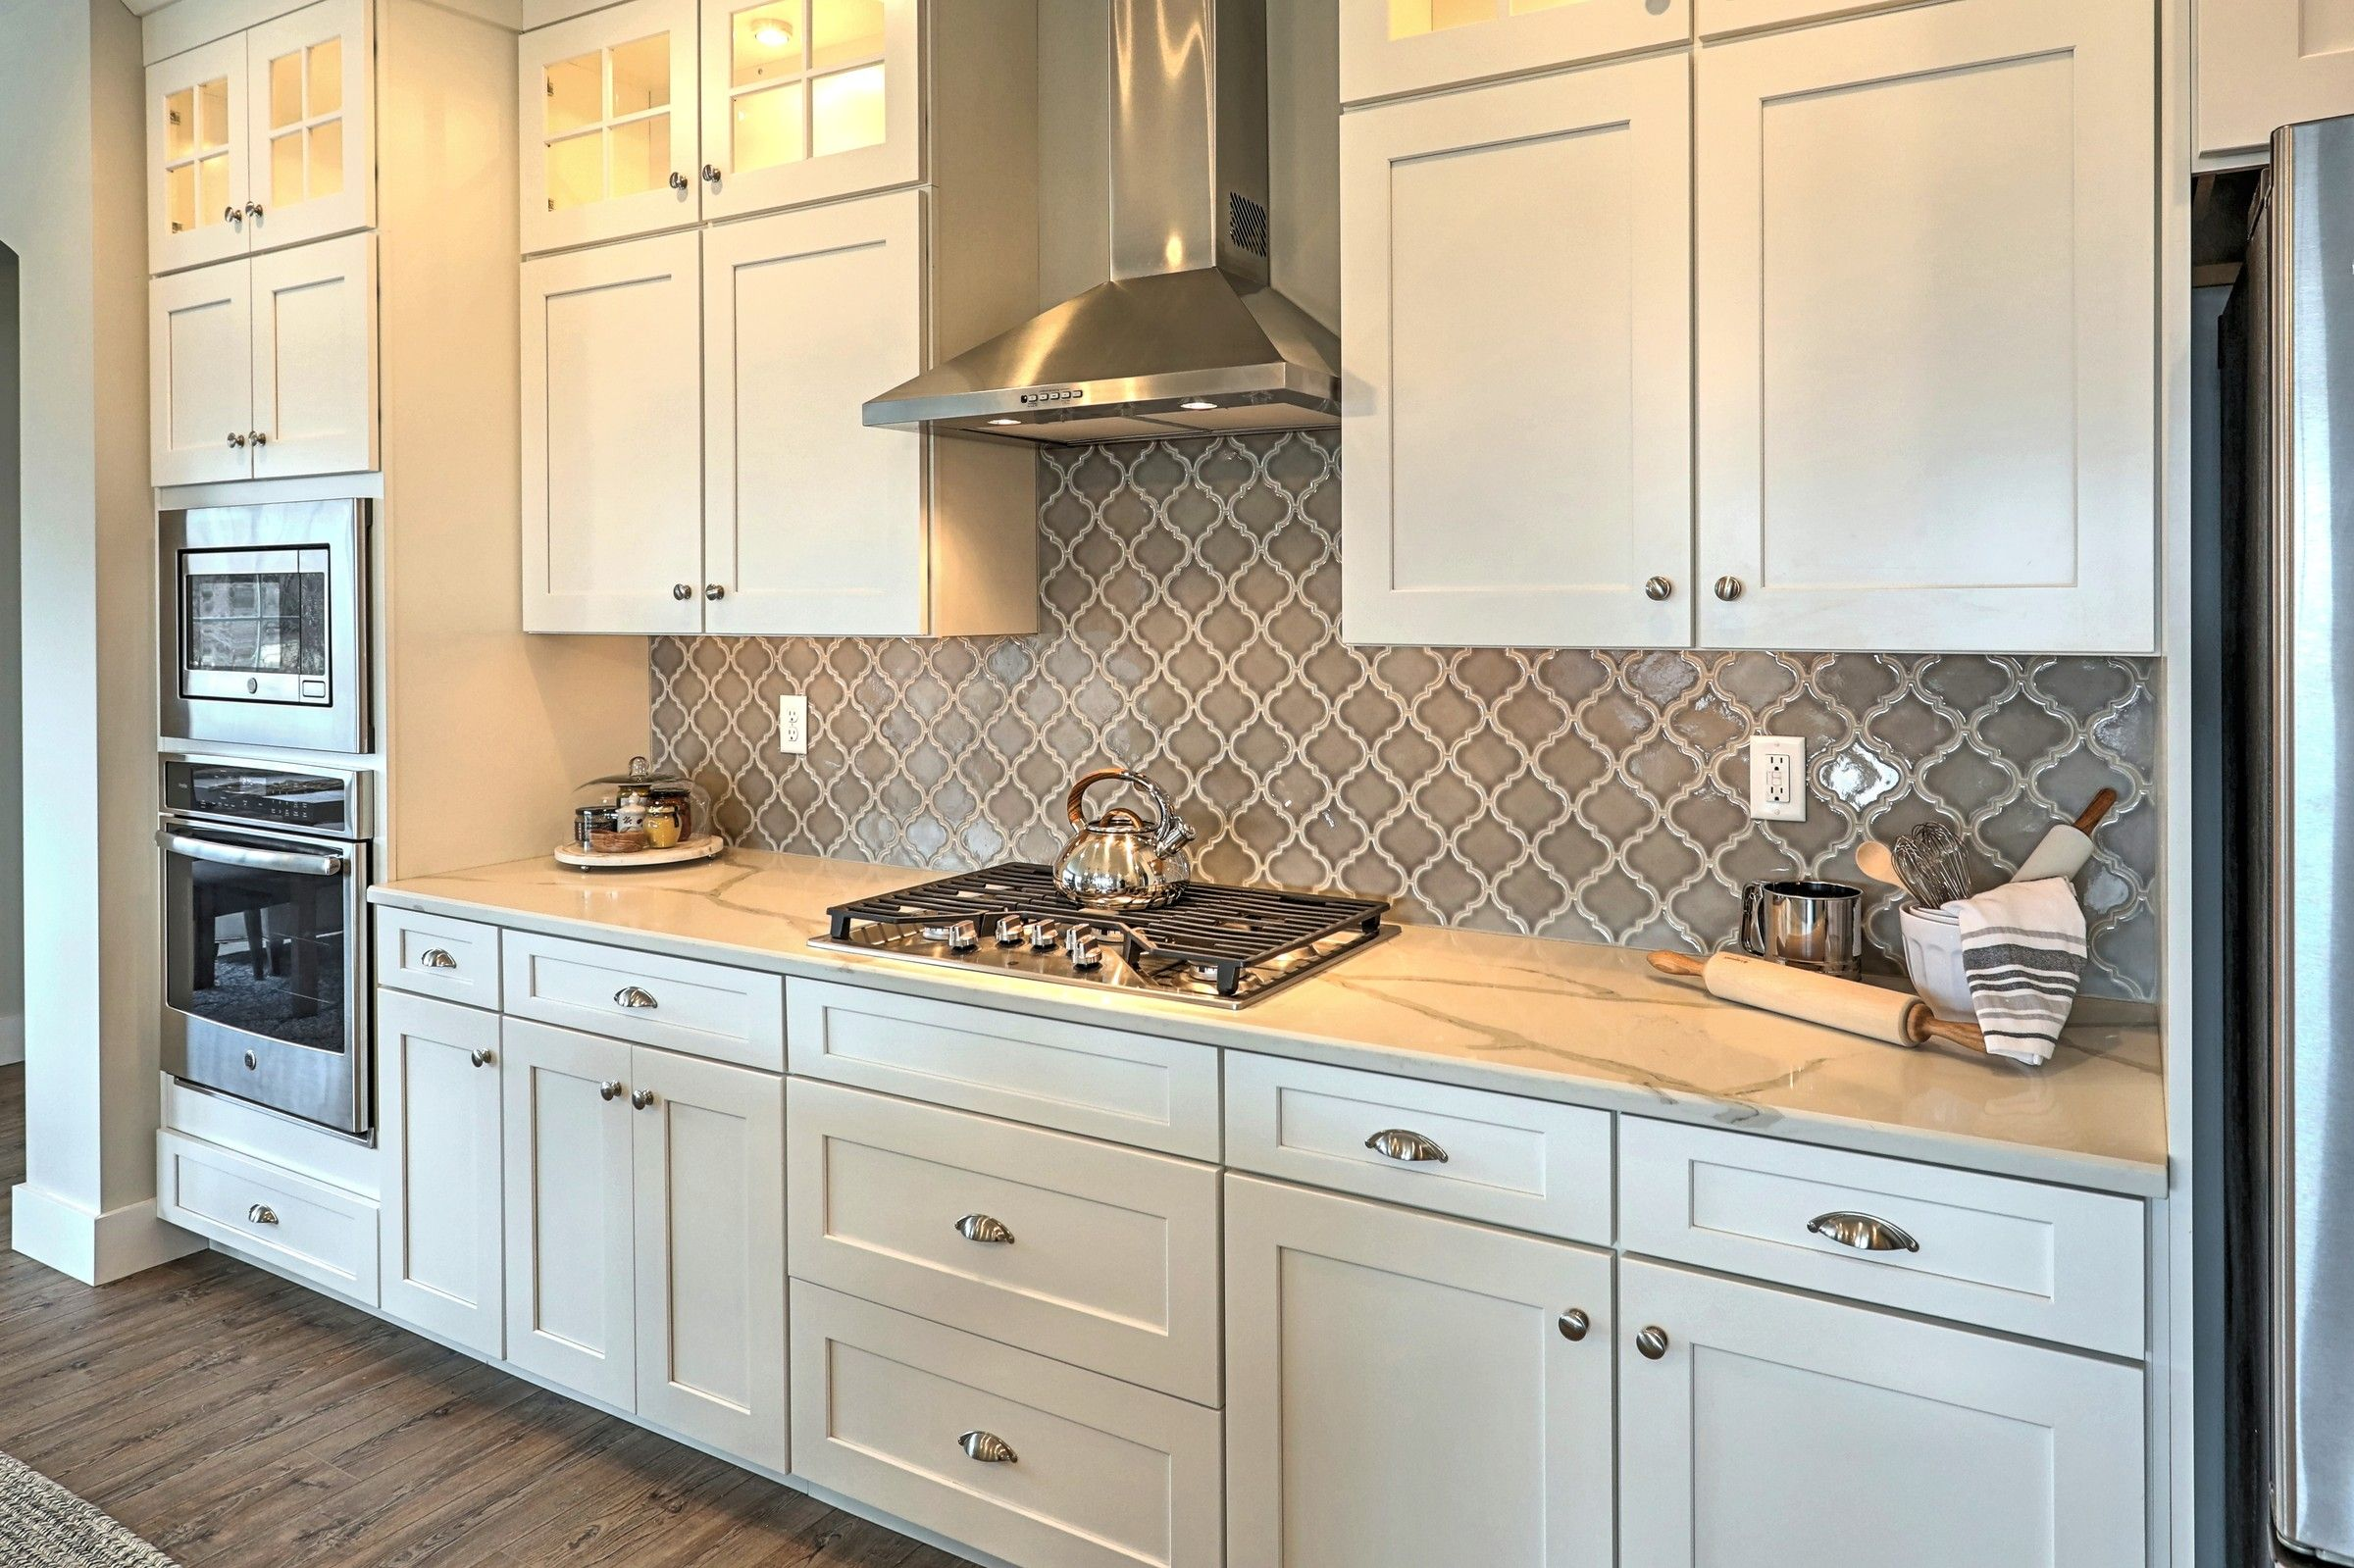 Kitchen featured in the Augusta Normandy By Keystone Custom Homes in Baltimore, MD